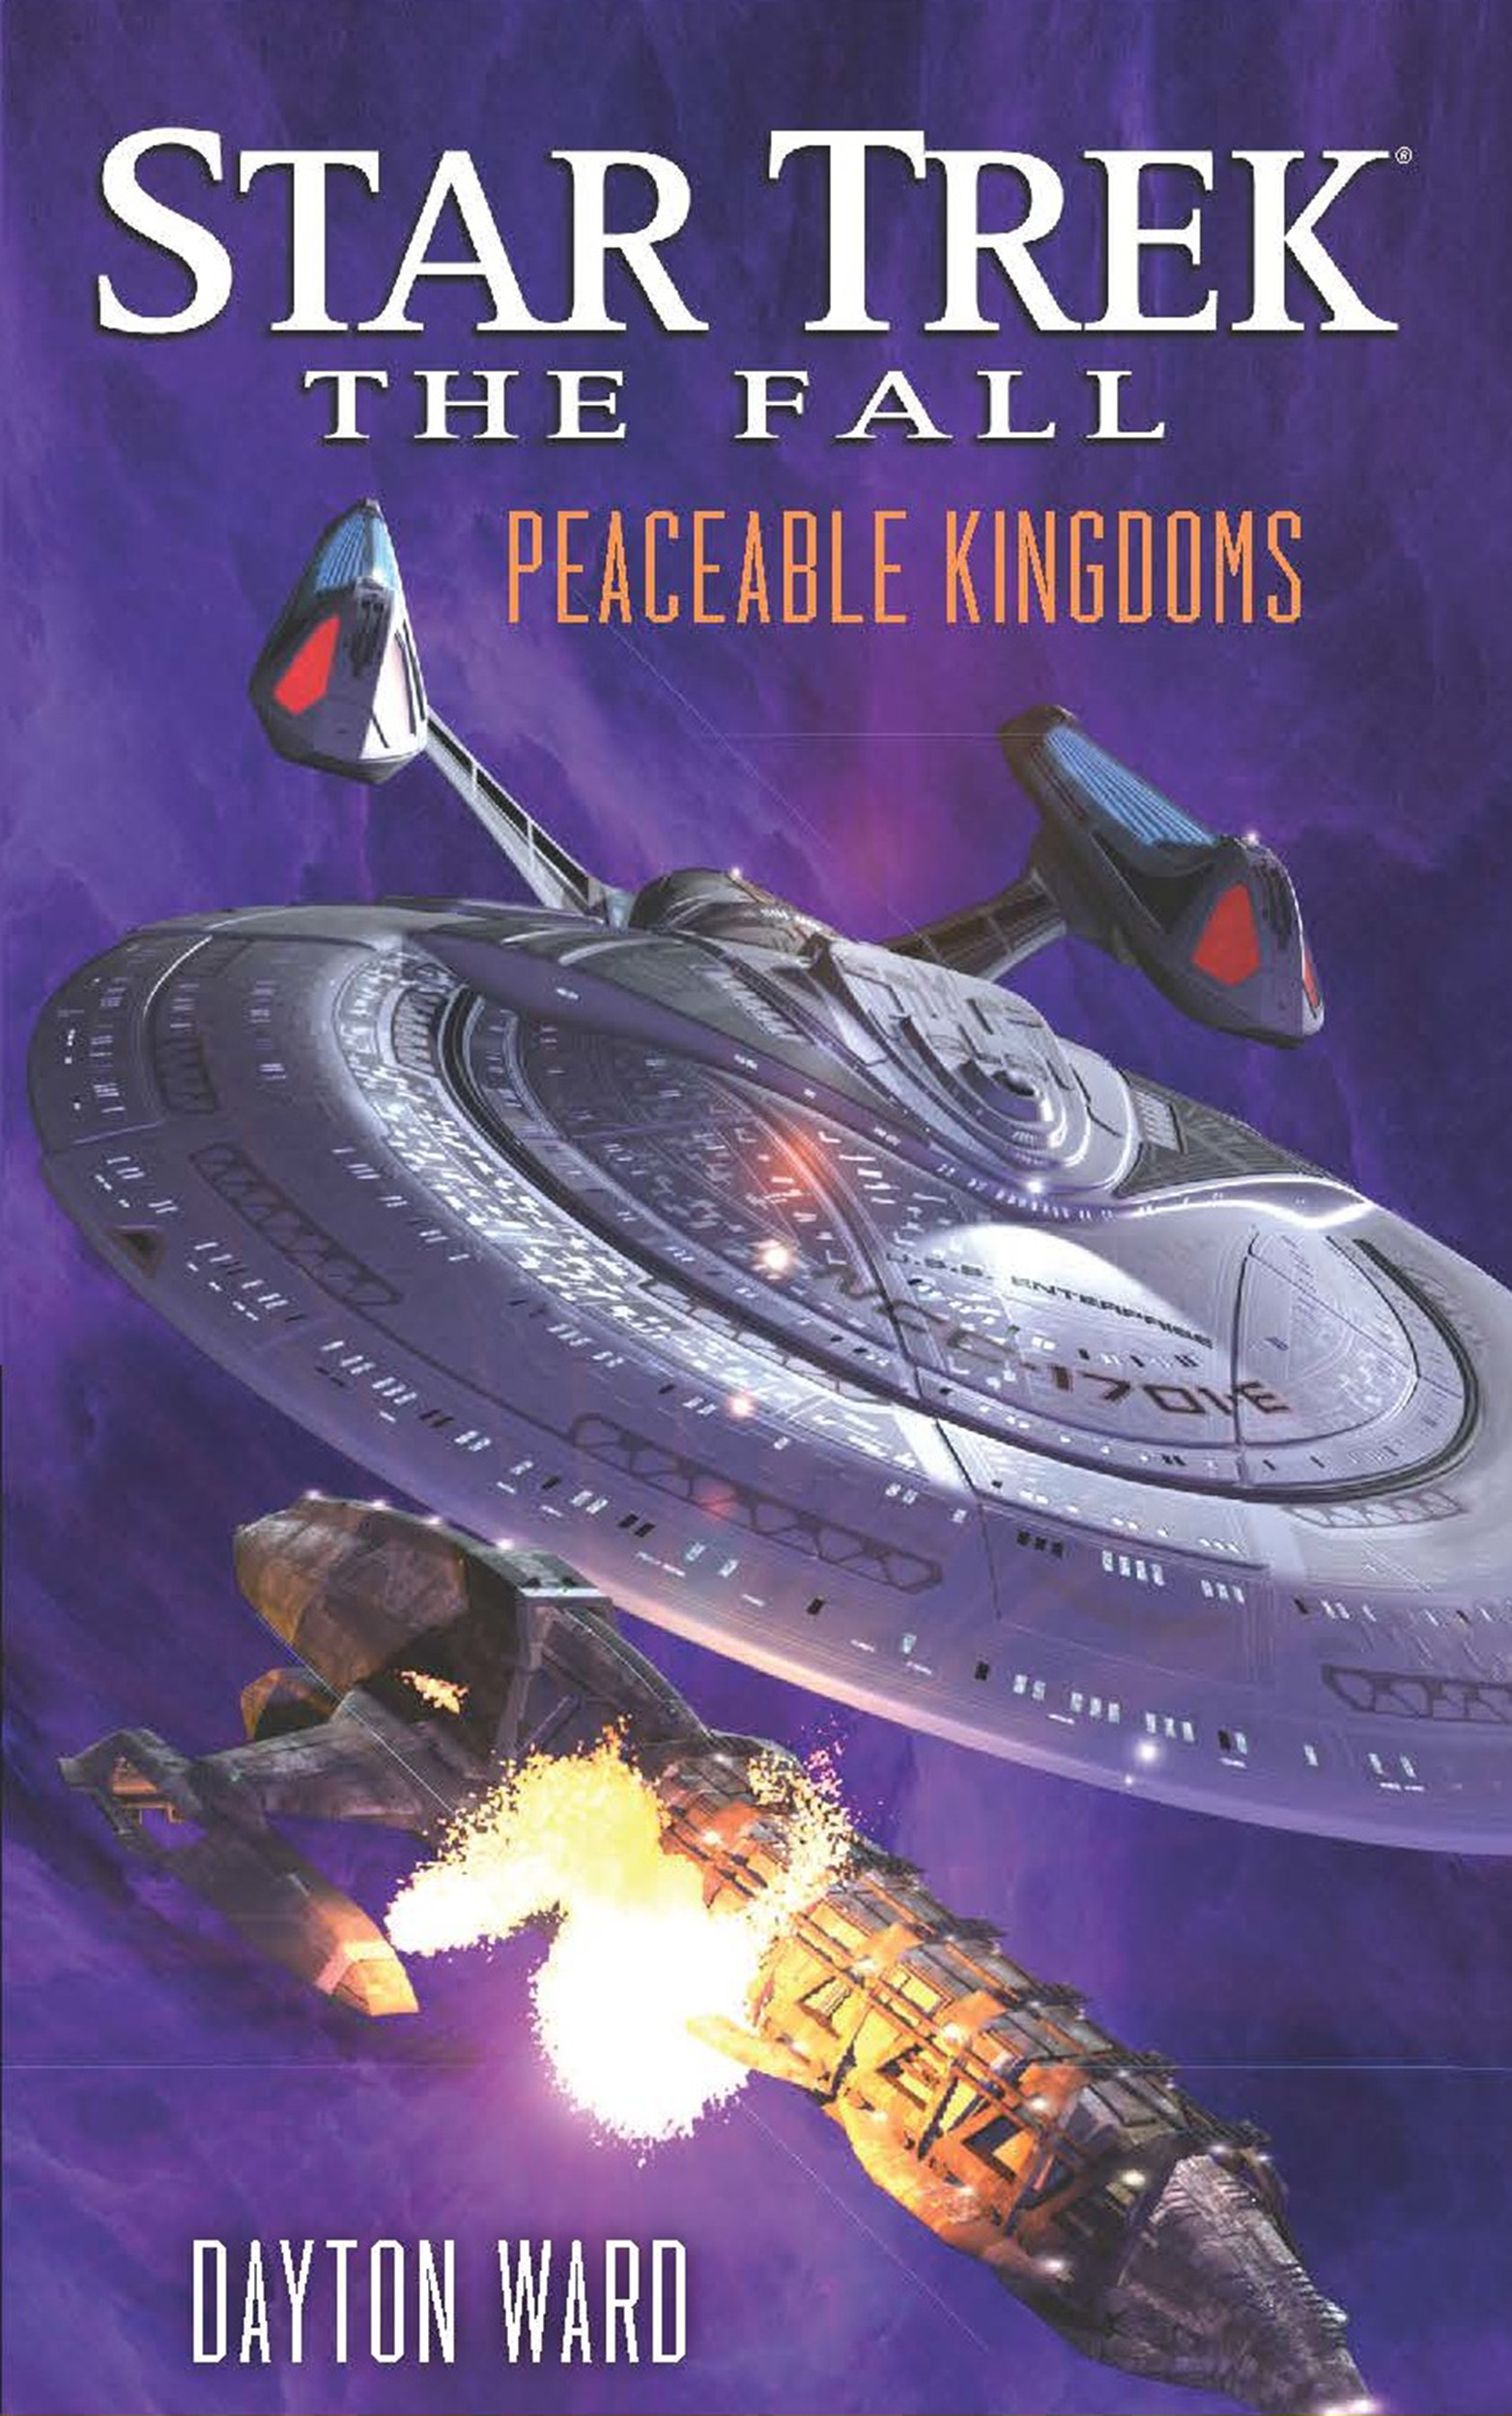 Star trek the fall peaceable kingdoms 9781476718996 hr